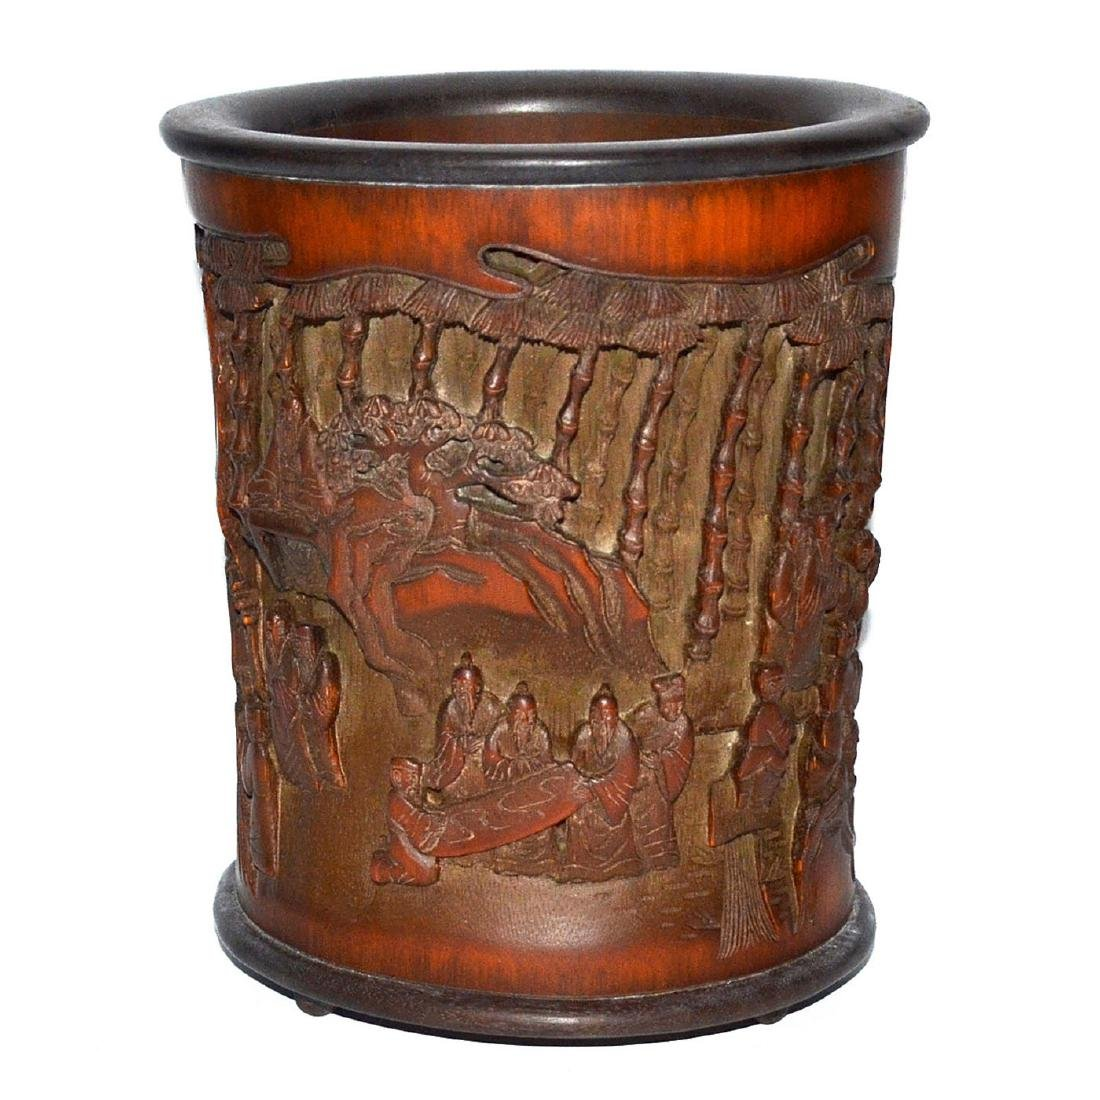 A Deeply Carved Bamboo Brush Pot with an Openwork Scene